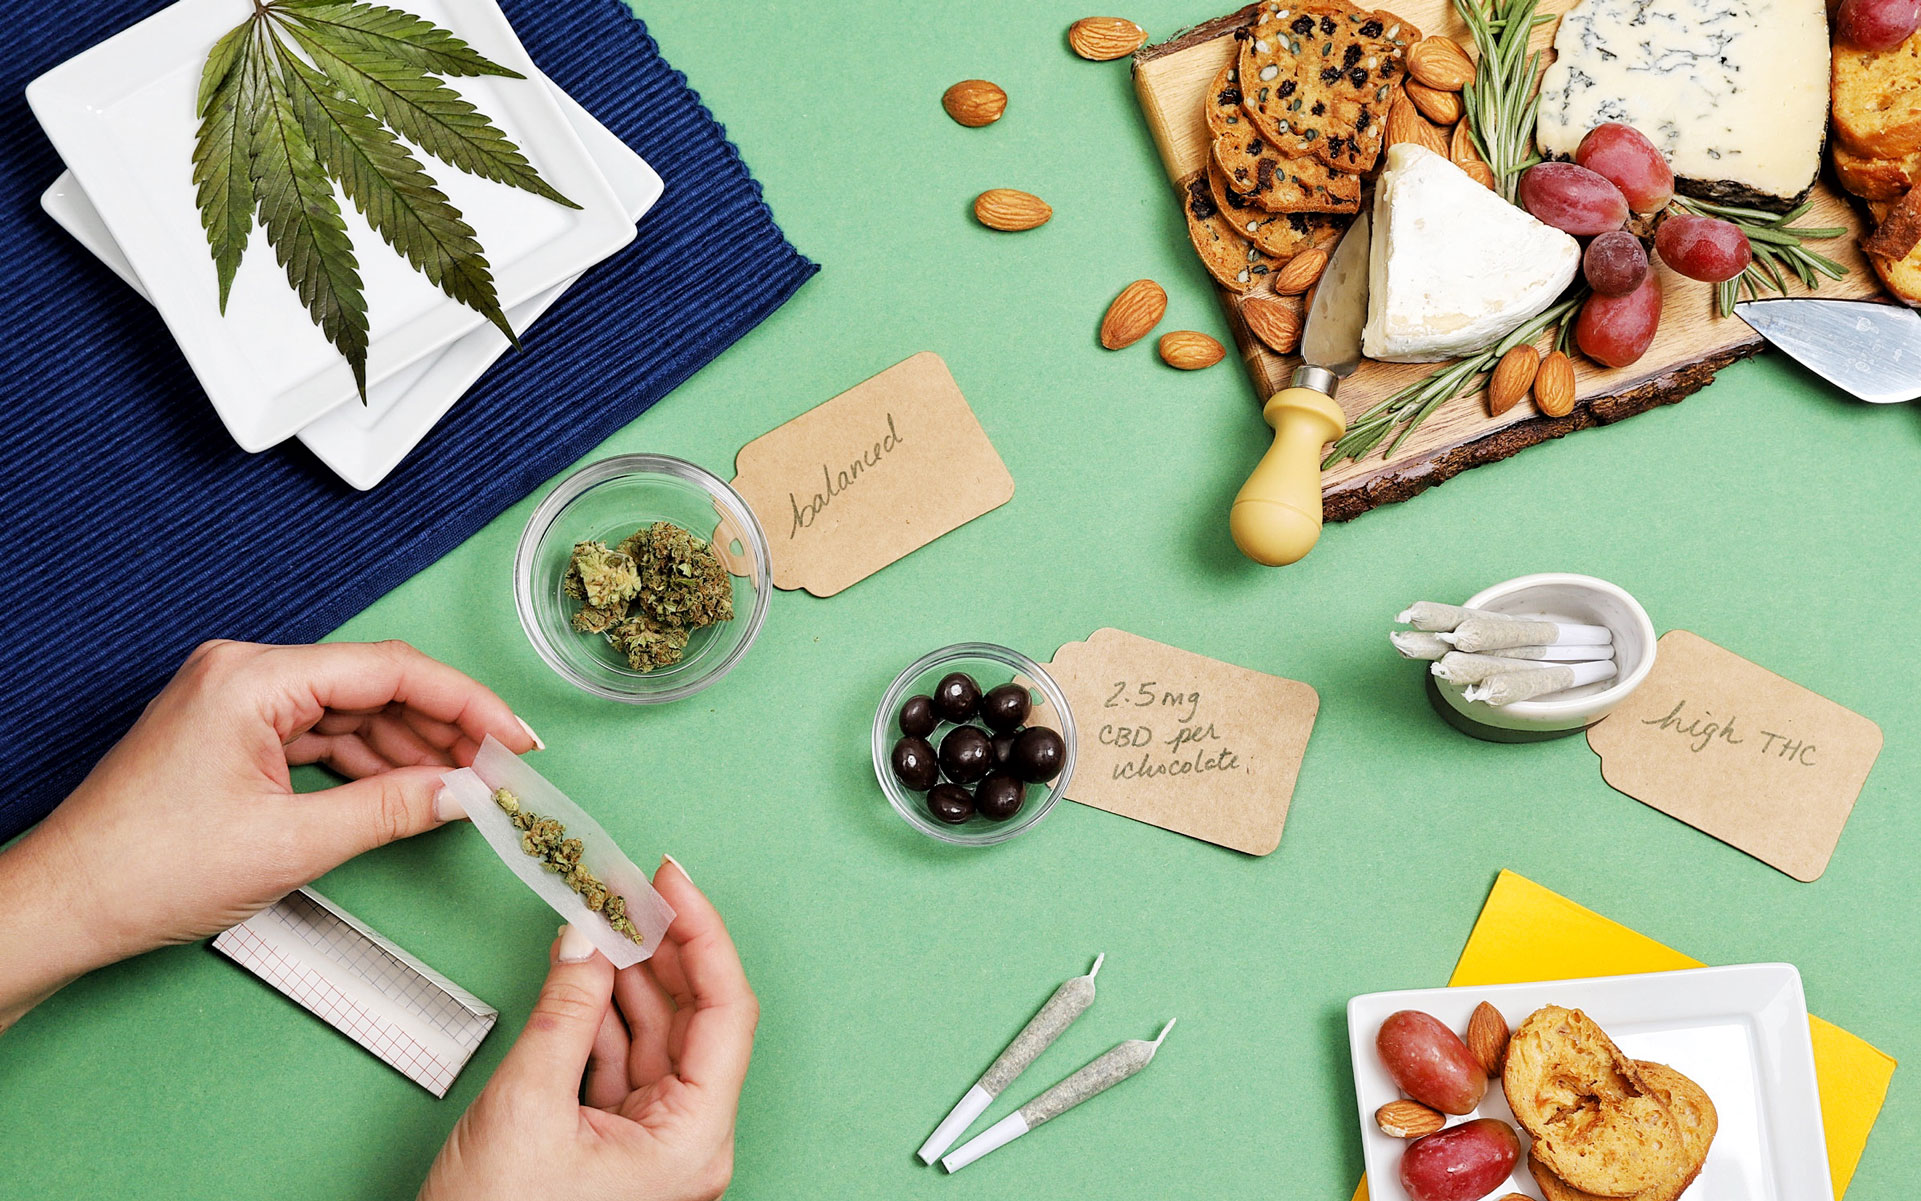 Party weed board, cheese board, rolling station